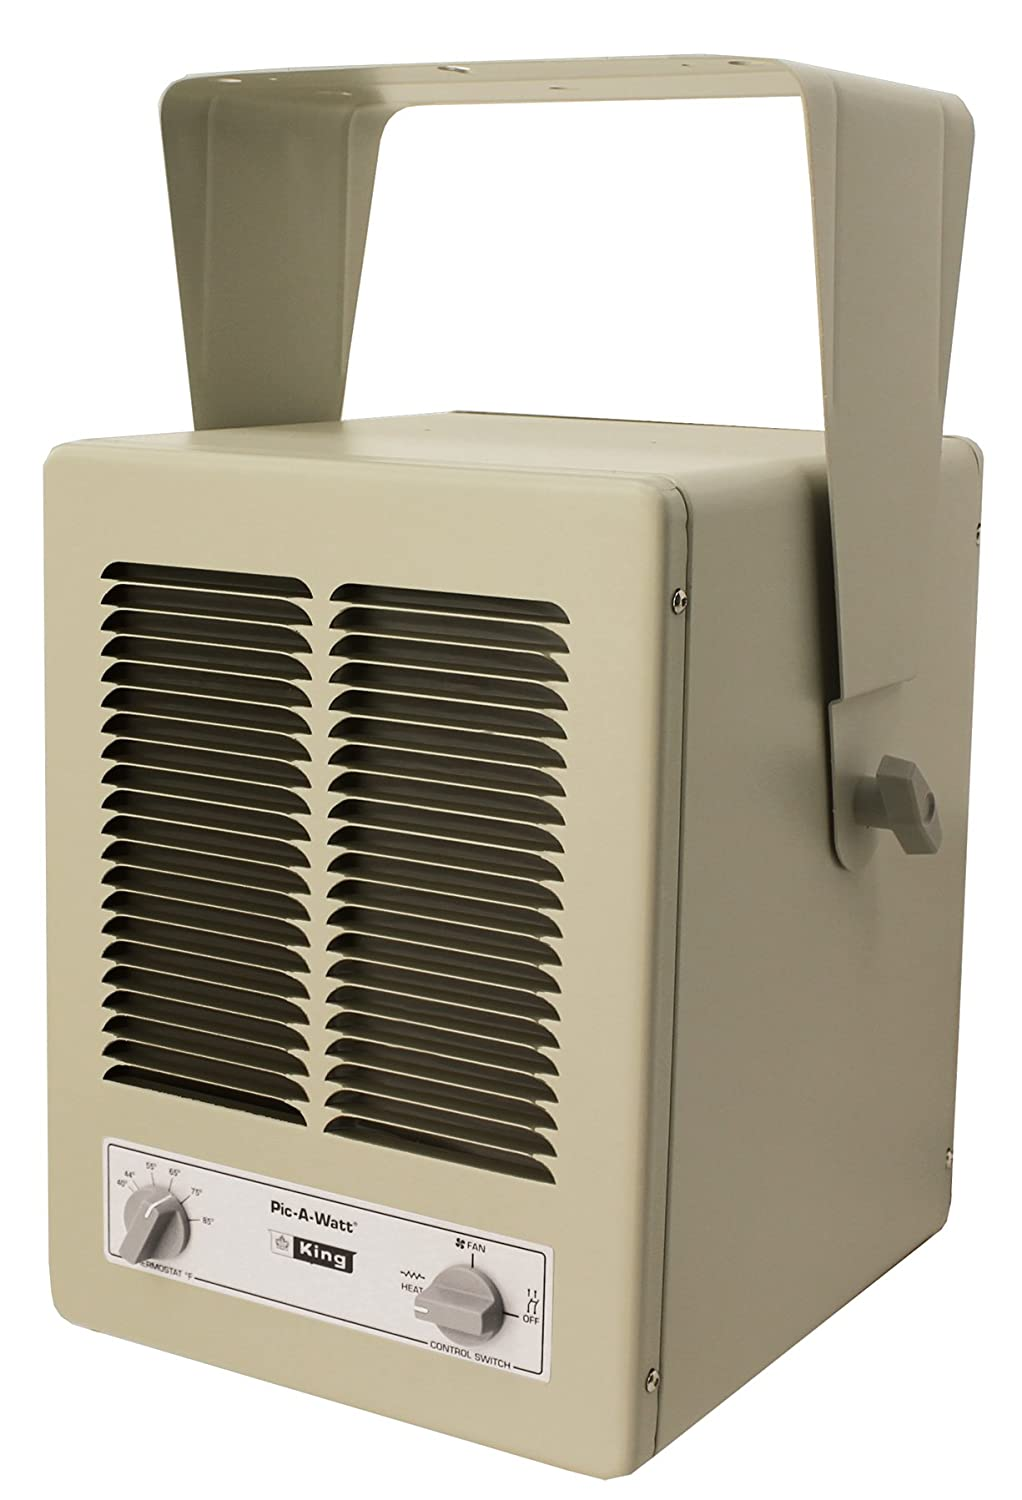 King KBP2006-3MP Heater - Best for energy efficiency